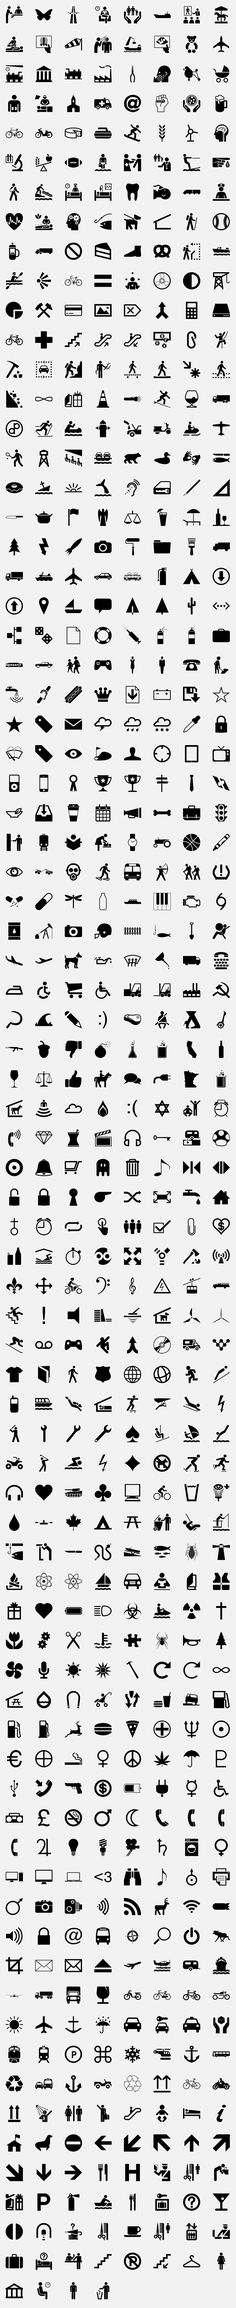 The Noun Project is a free,  online symbol library of the world's visual language that can be understood by all cultures and all people. http://thenounproject.com